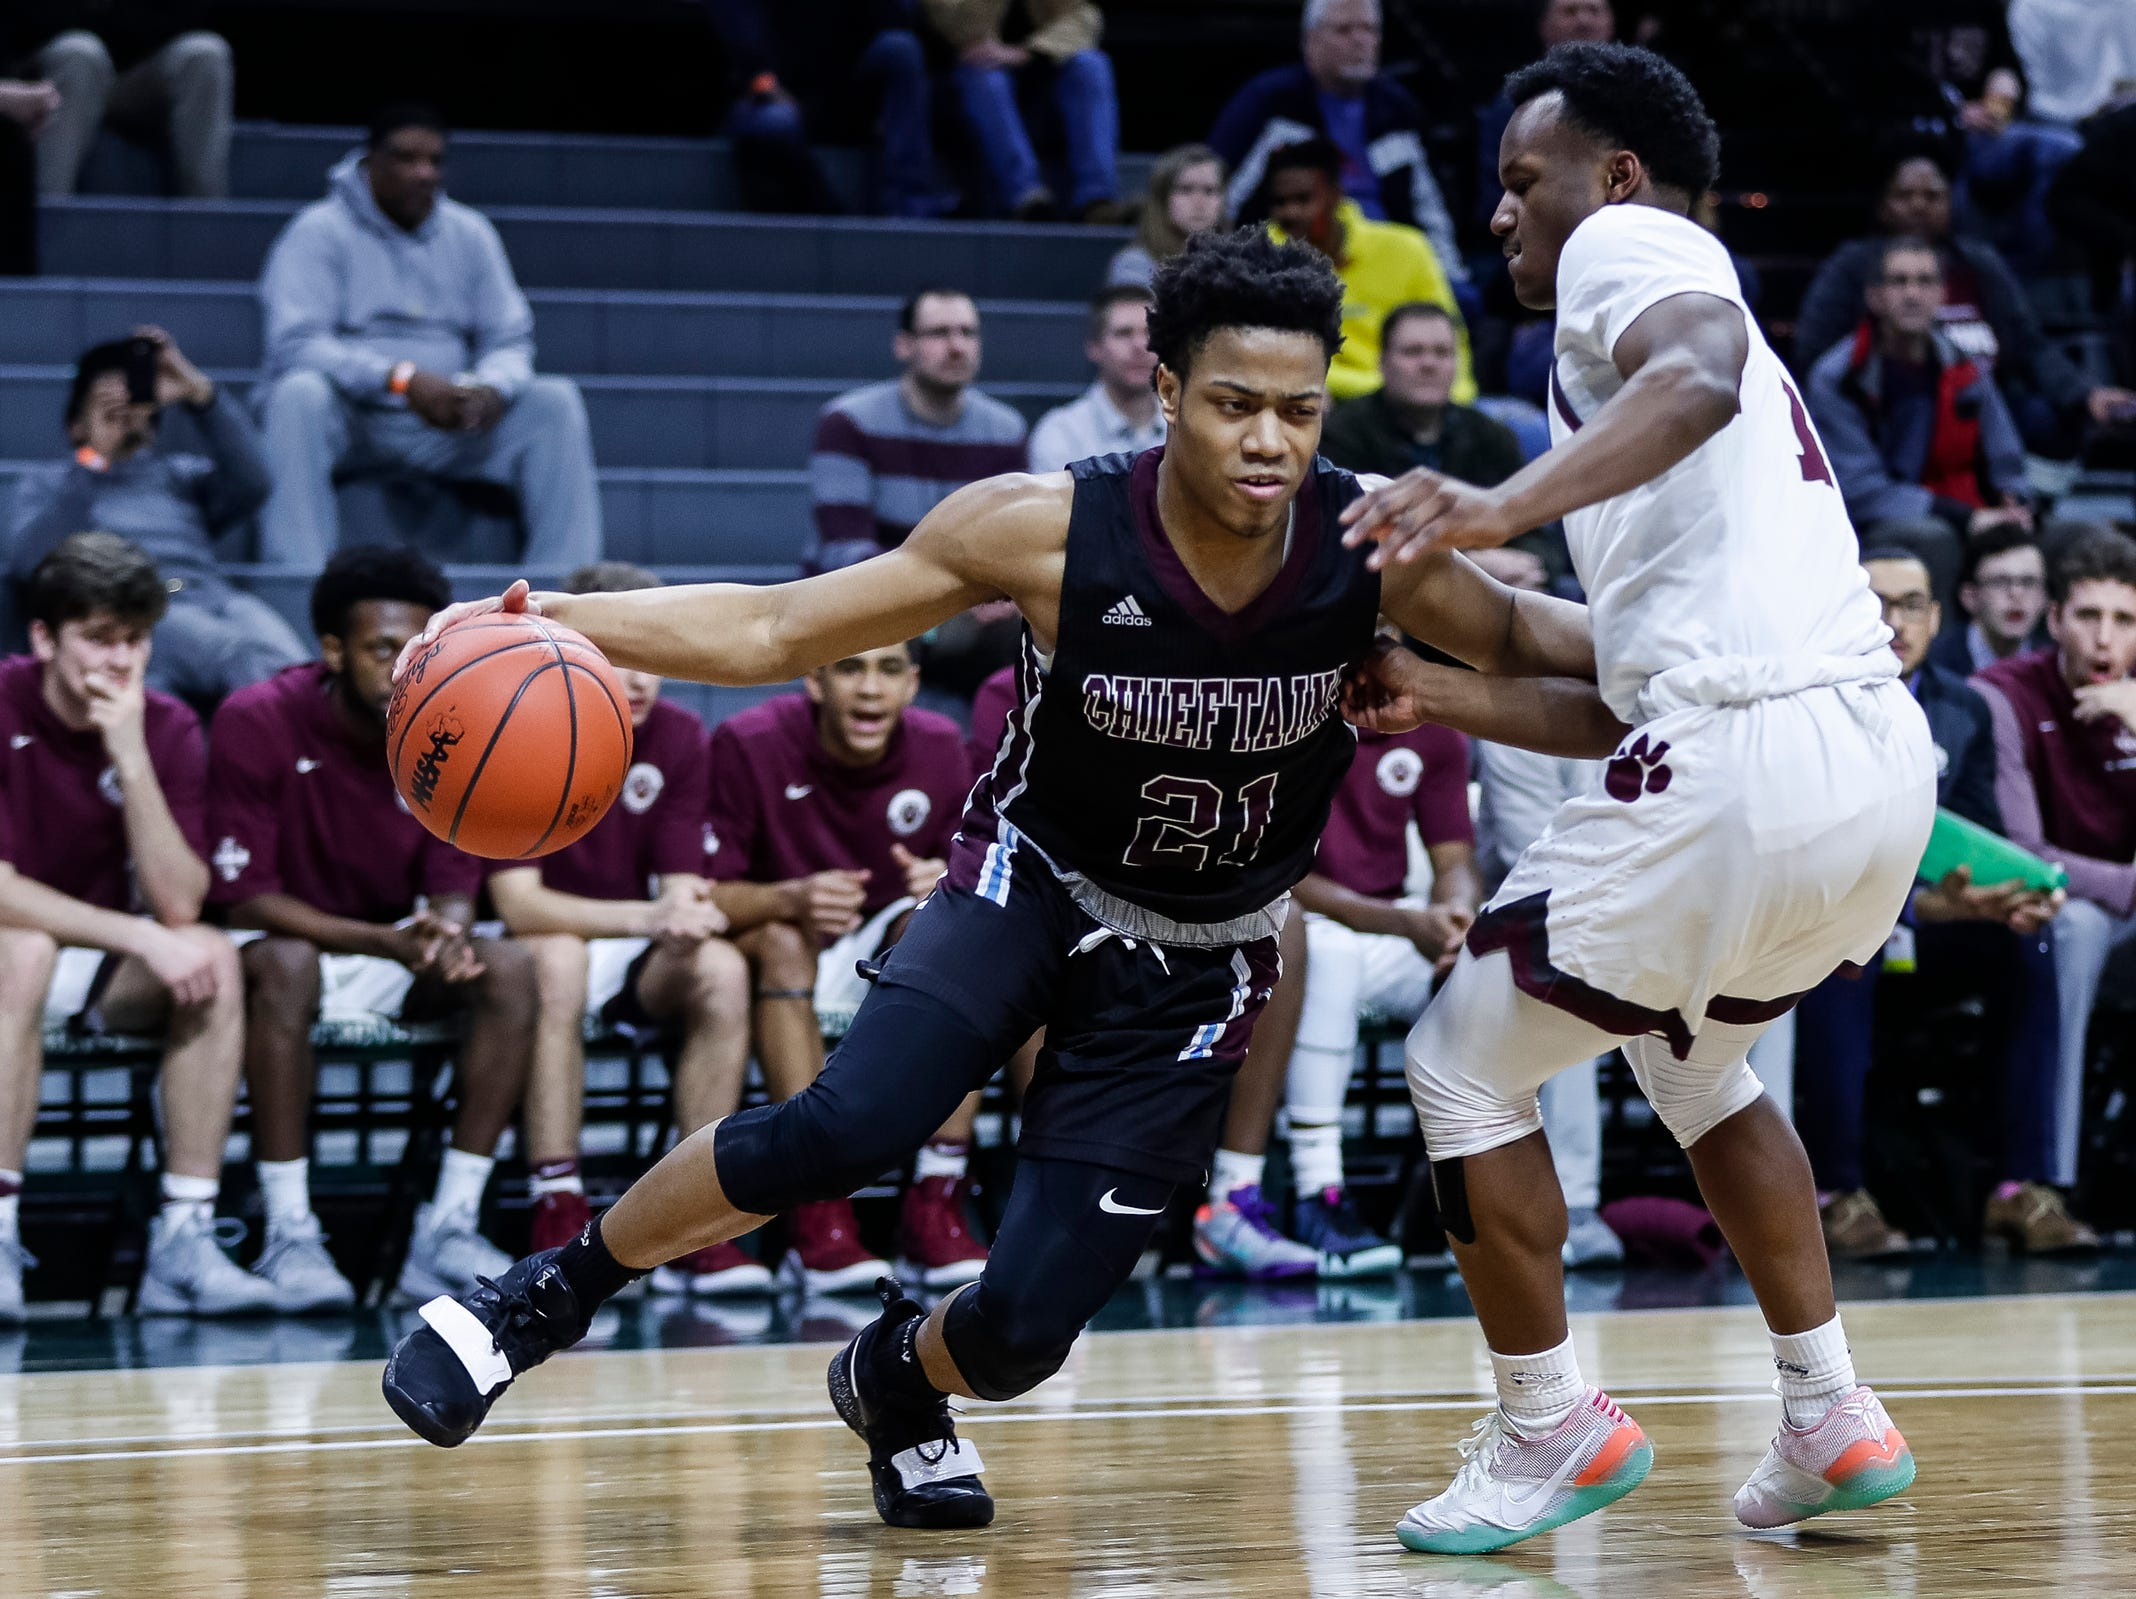 Okemos' Noah Pruitt (21) is defended by U-D Jesuit's Julian Dozier (1) during the first half of MHSAA Division 1 semifinal at the Breslin Center in East Lansing, Friday, March 15, 2019.